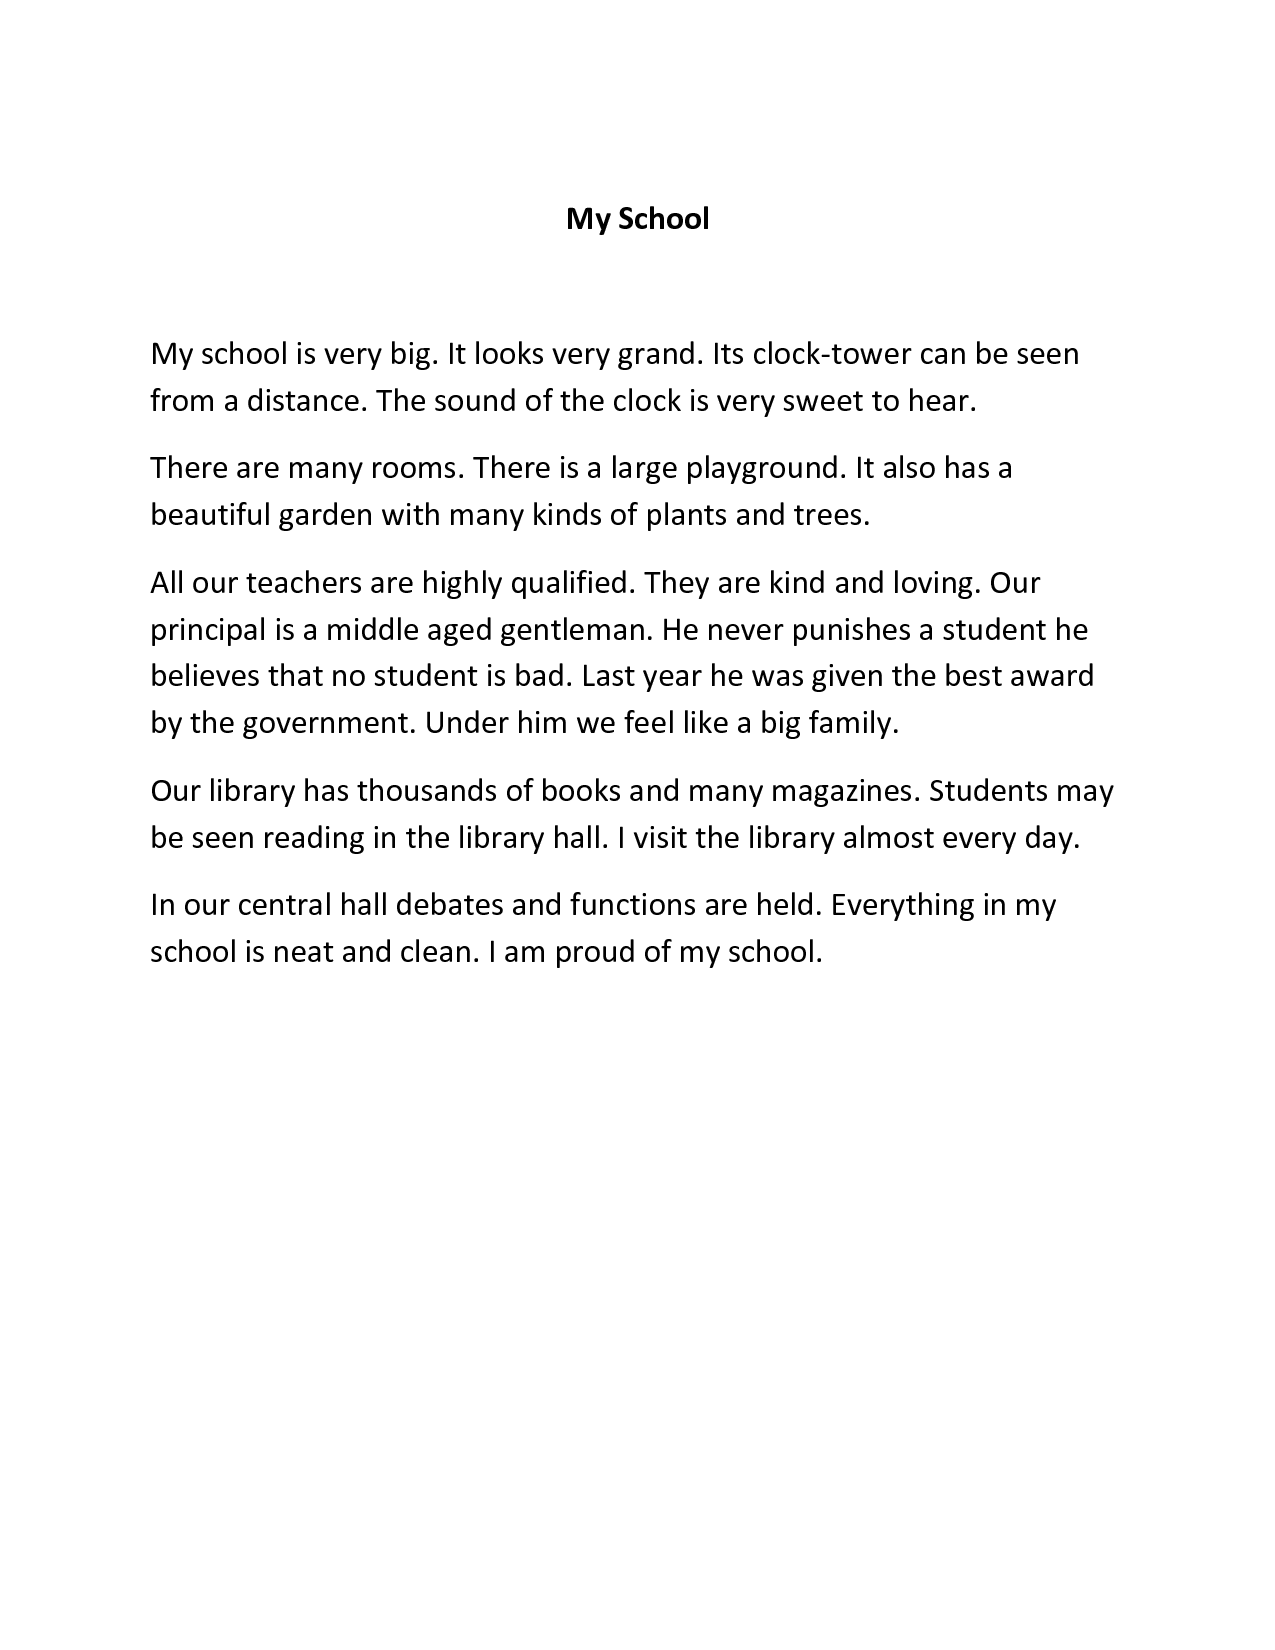 004 Essay Example Cc0luyxlhc Shocking Short Answer Rubric Apush About Slavery In America Questions Internal Medicine Full